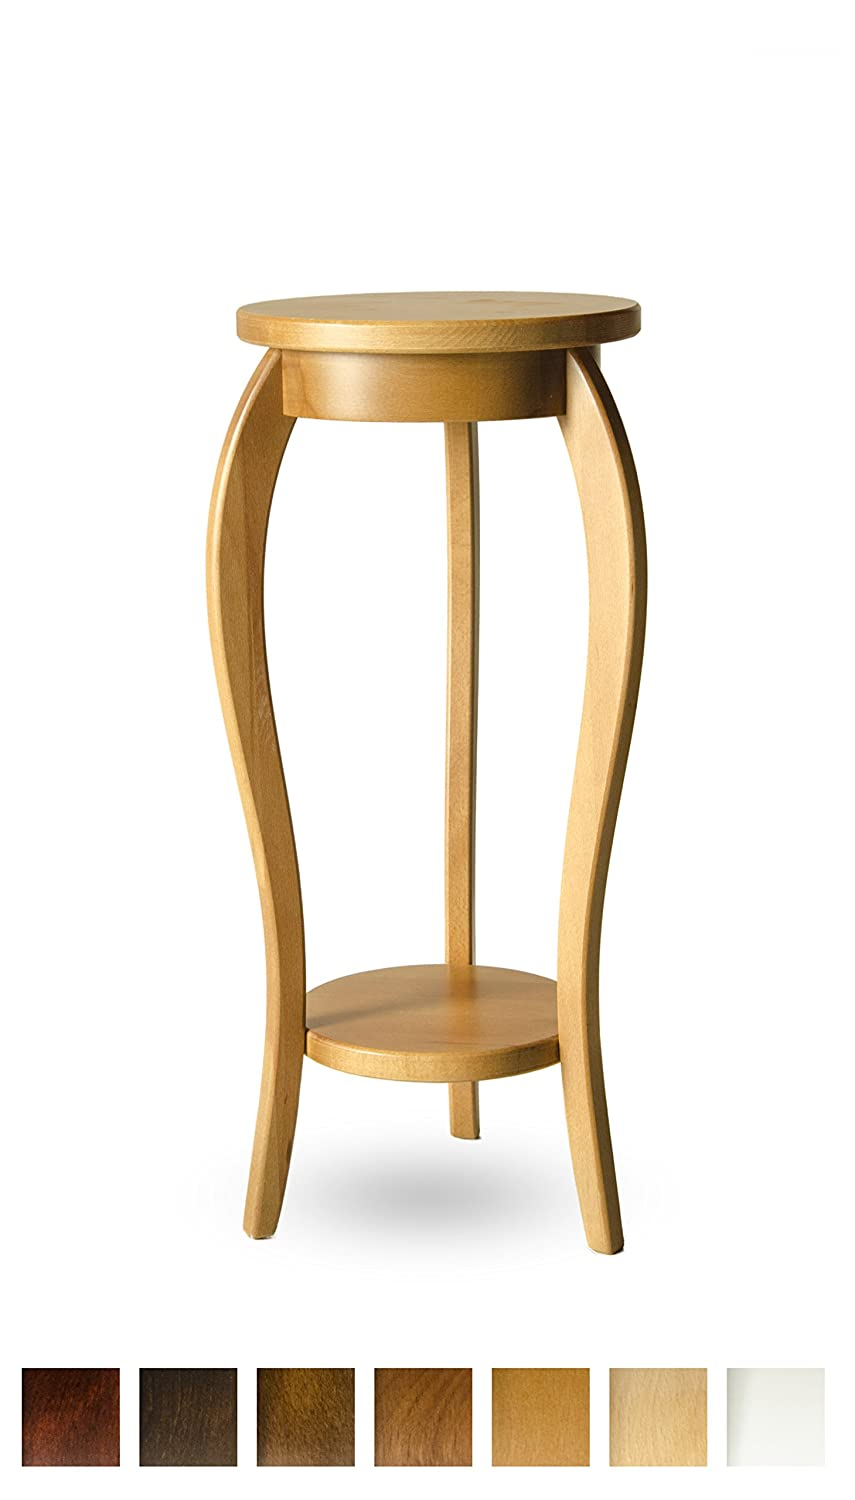 Solid Beech Wood Side Table Flower Table Stand 7 Colours - 28x60 - WHITE Mirrors's spol. s r.o.